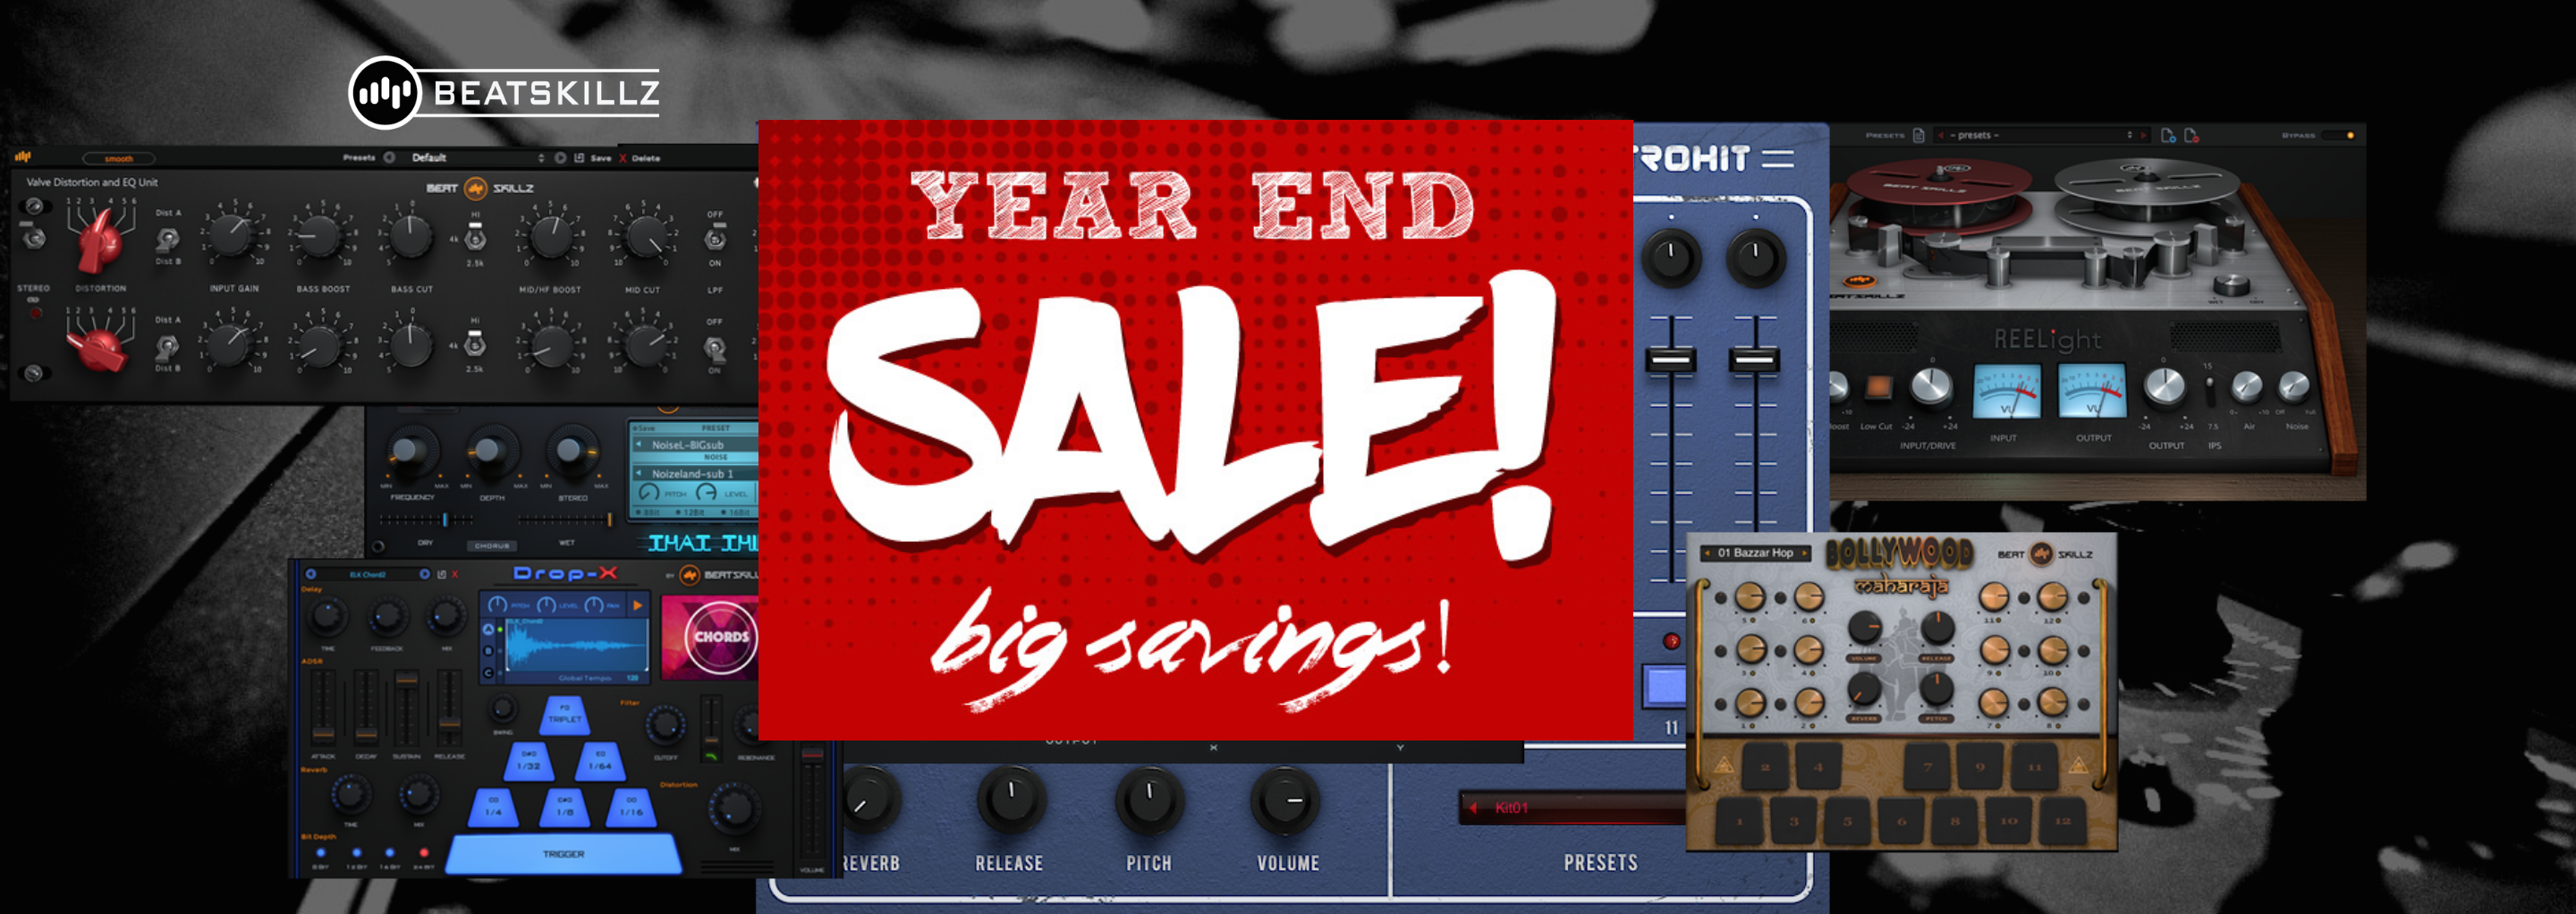 BeatSkillz End of Year Sales